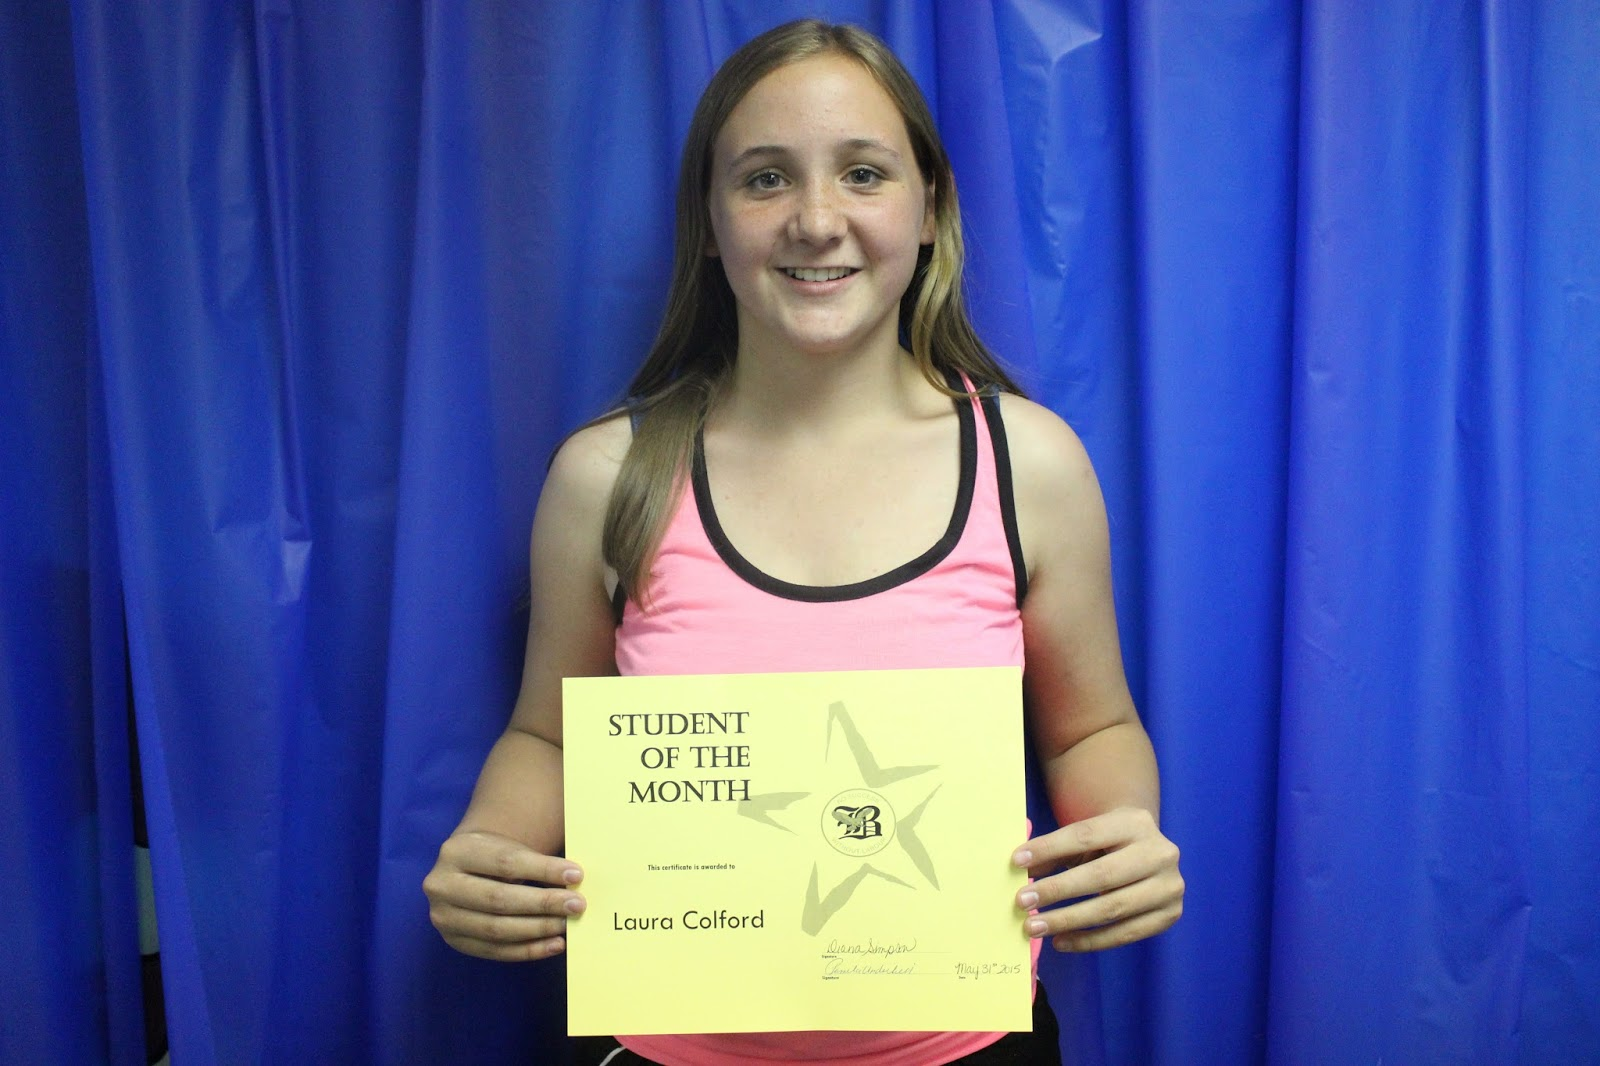 middle school students of the month the blackville talon get things done she is involved in many activities maintains good grades and is always willing to help out